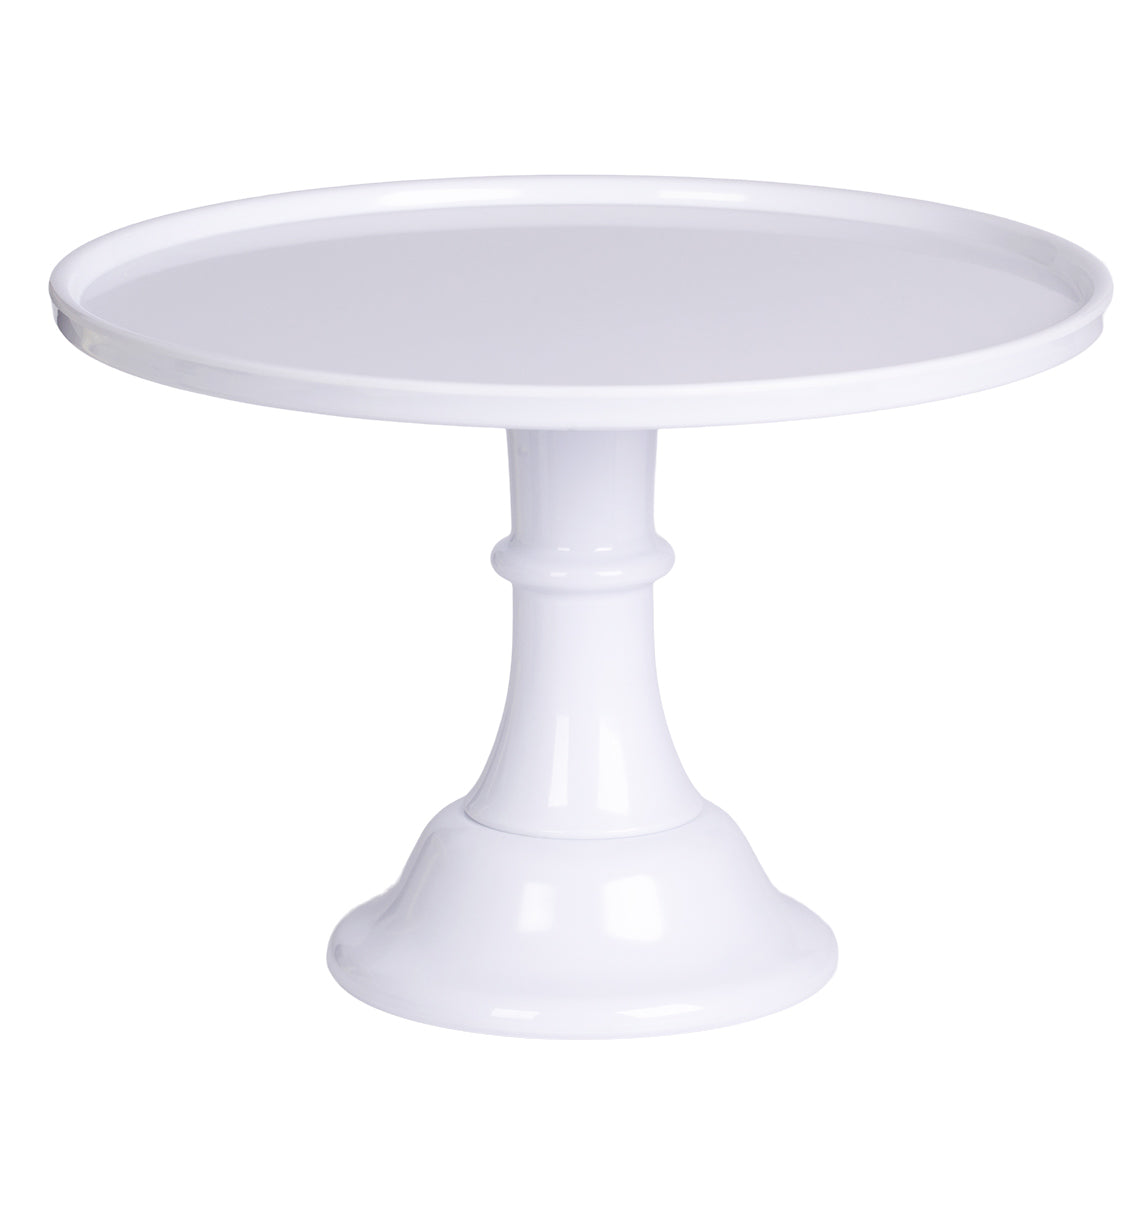 Classic Large Cake Stand - White